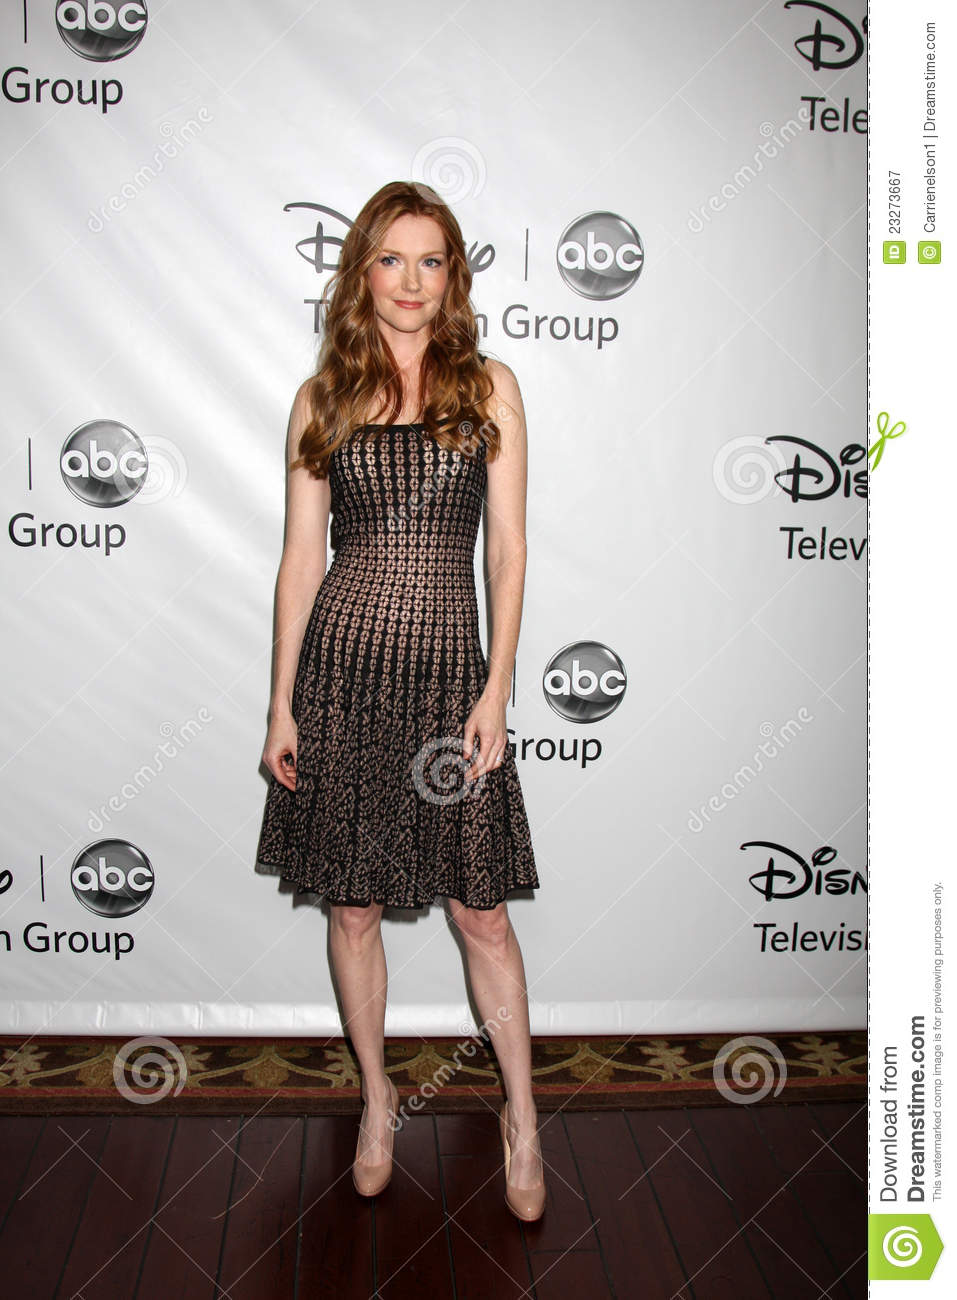 Images of Darby Stanchfield | 957x1300